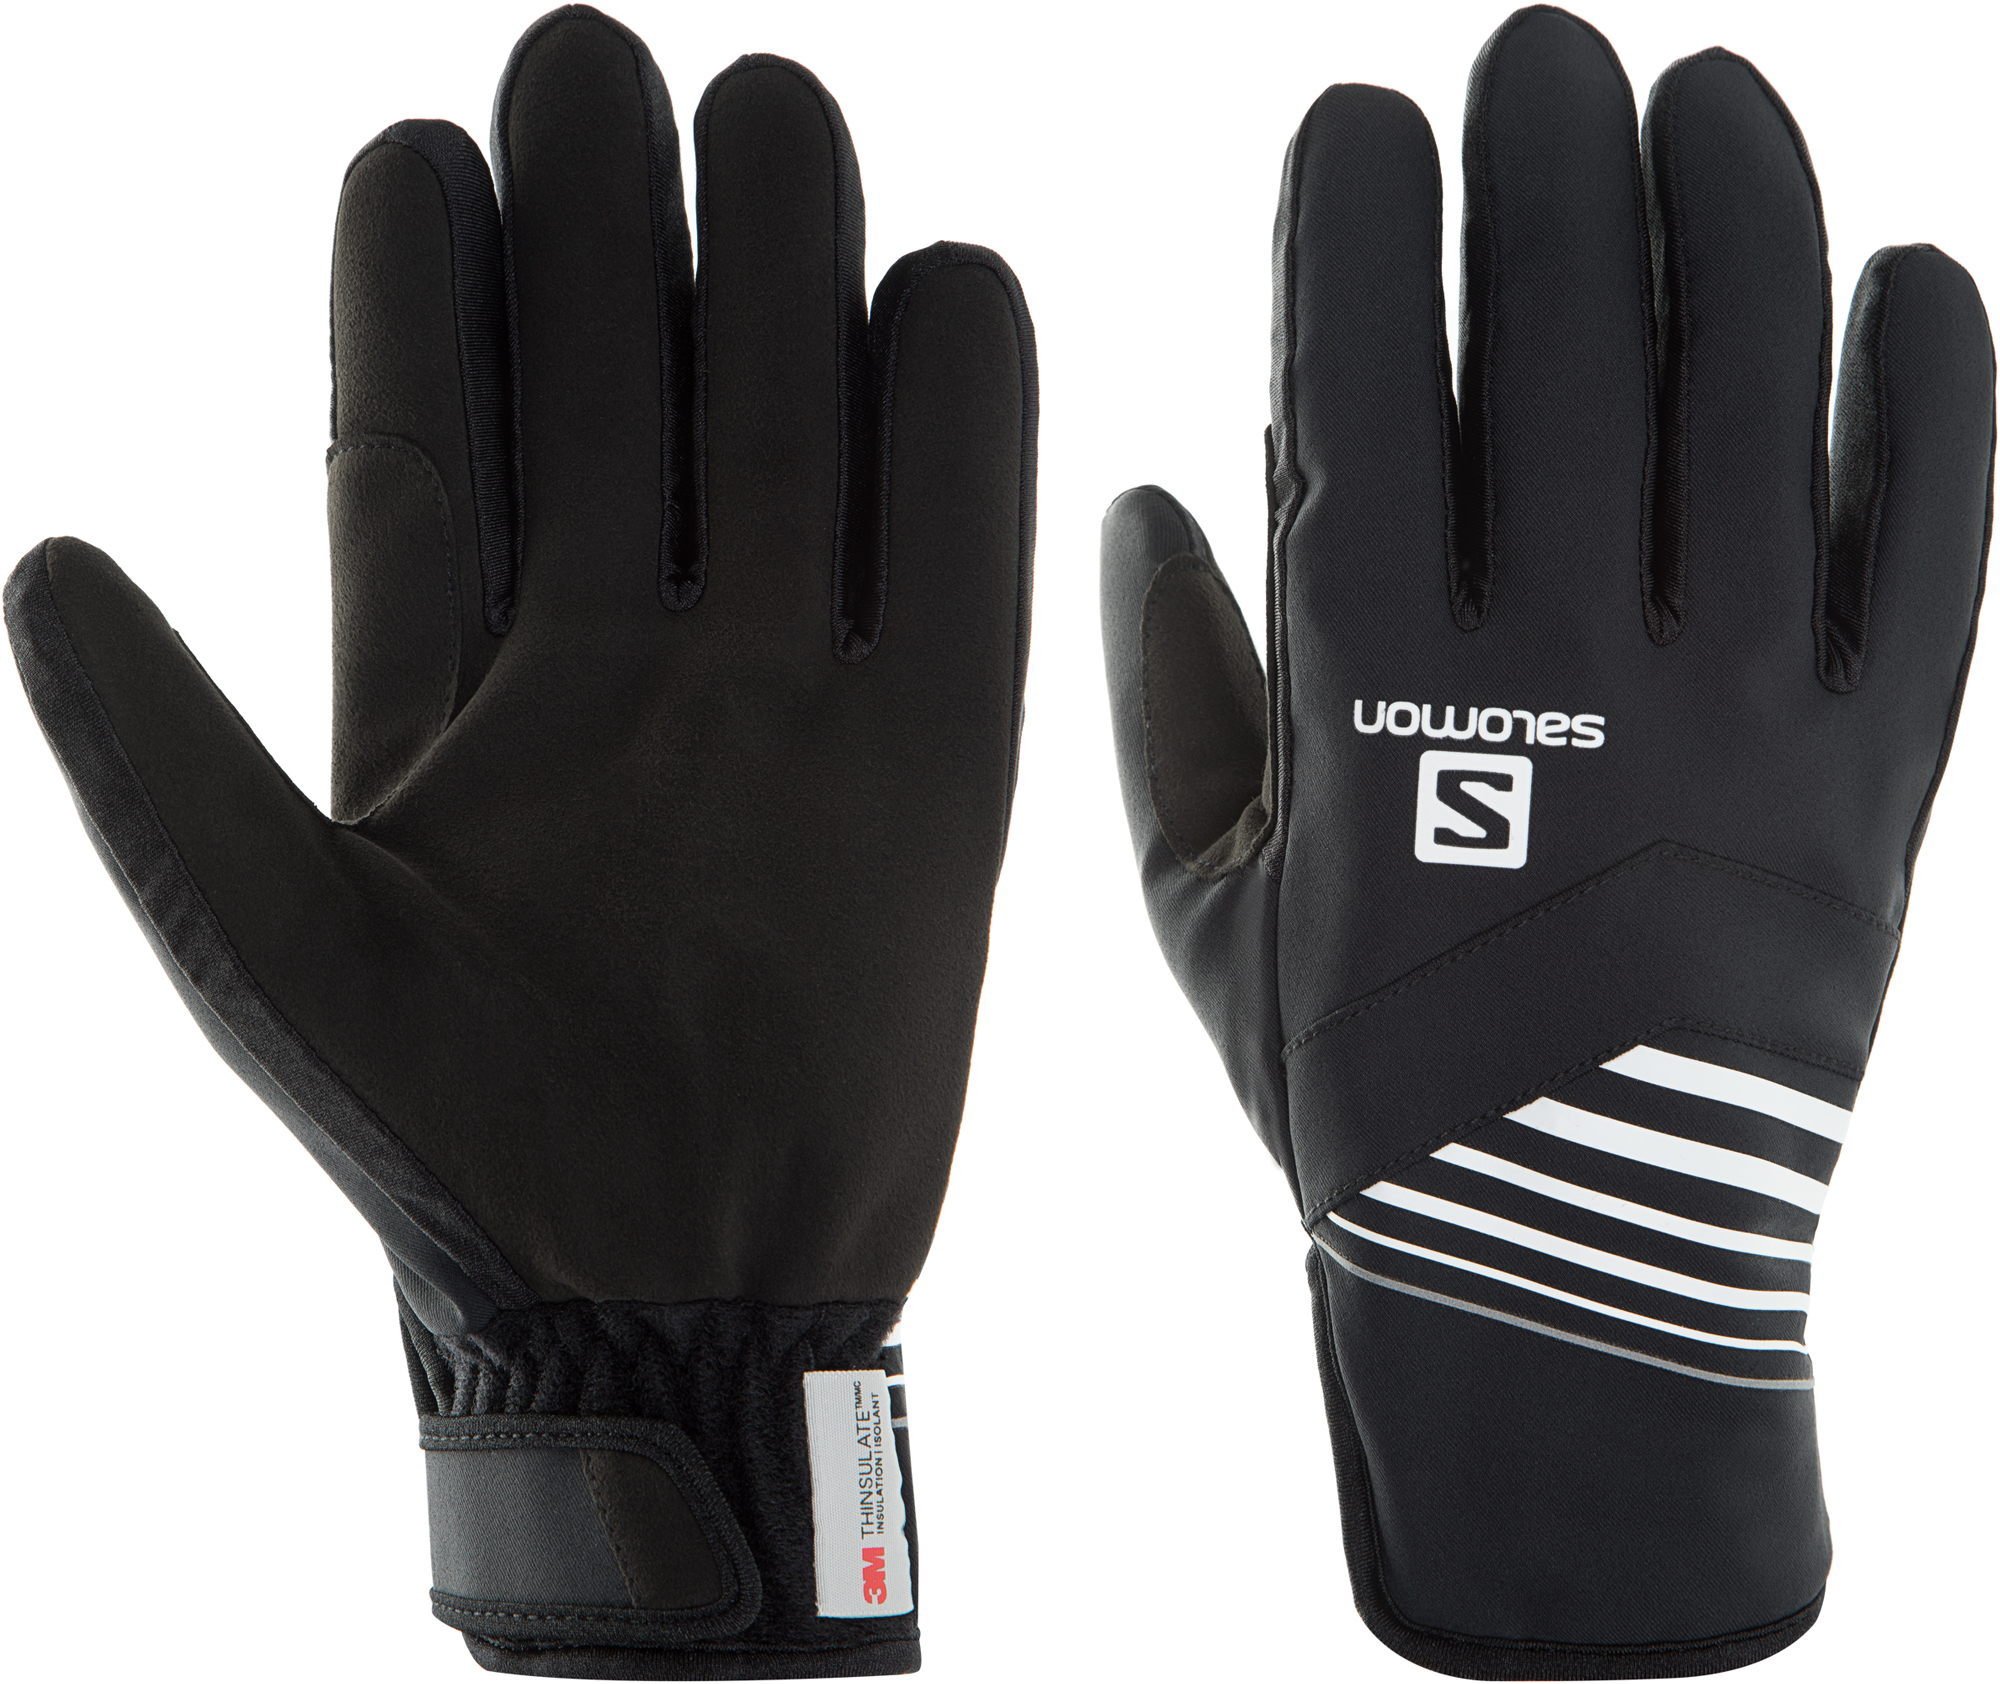 Salomon Перчатки Salomon RS Warm Glove, размер 9,5